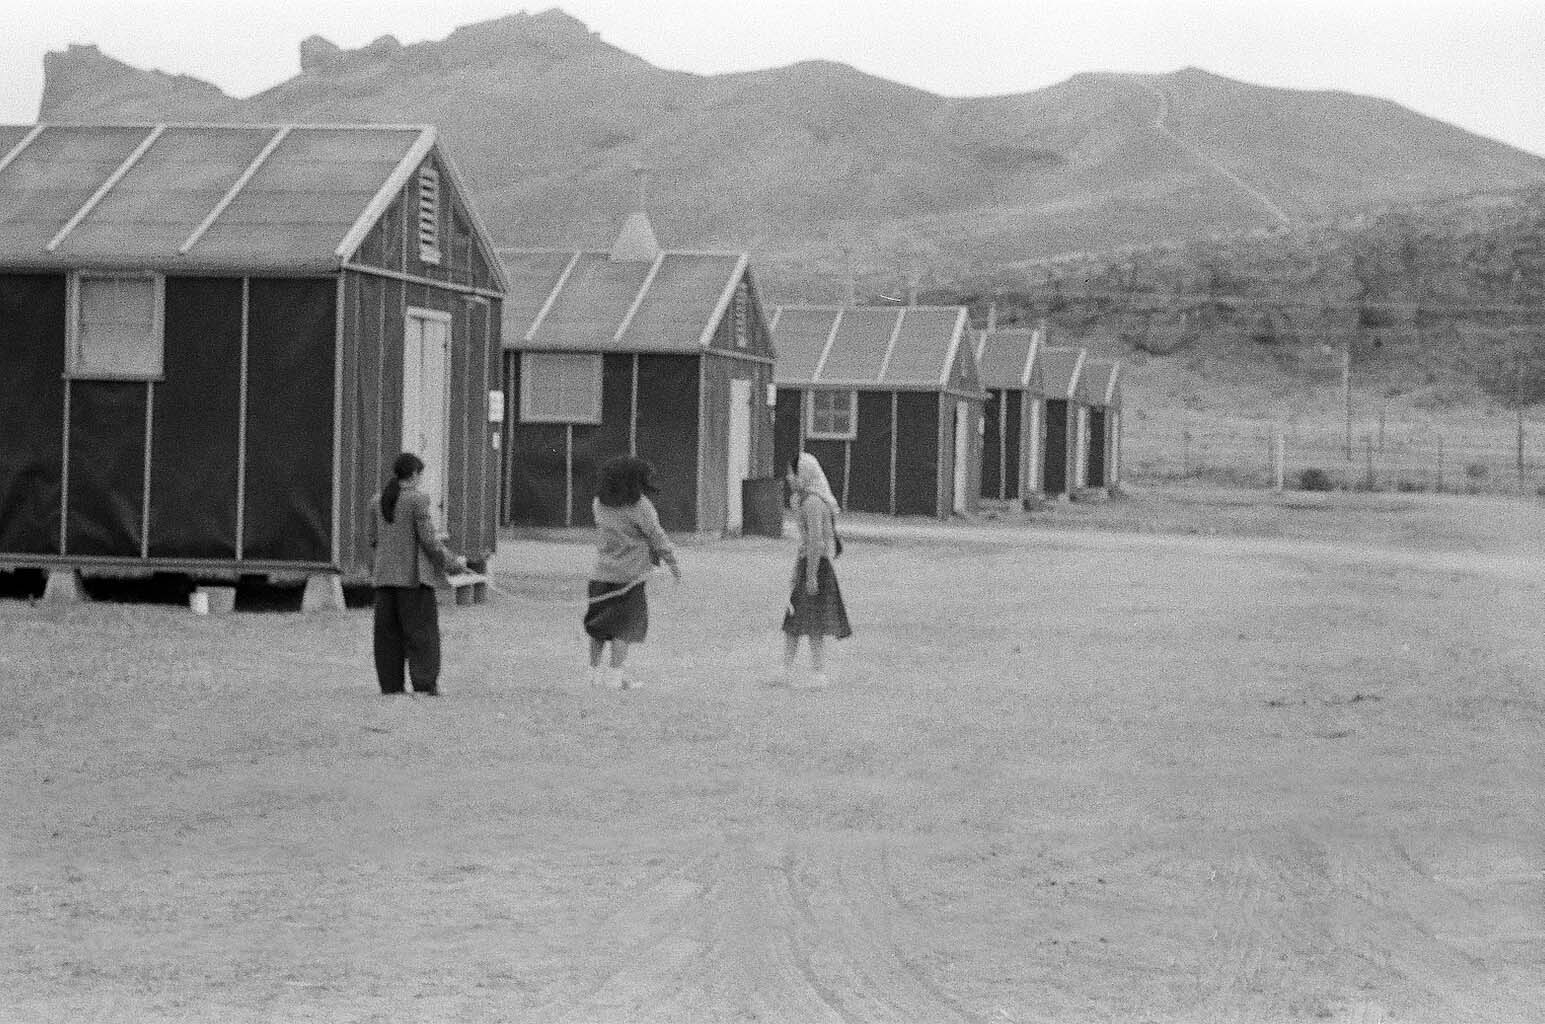 farewell to manzanar essay on papa Farewell to manzanar is jeanne wakatsuki's essays related to farewell to manzanar 1 when the wakatuski family is released from manzanar, papa wants to.